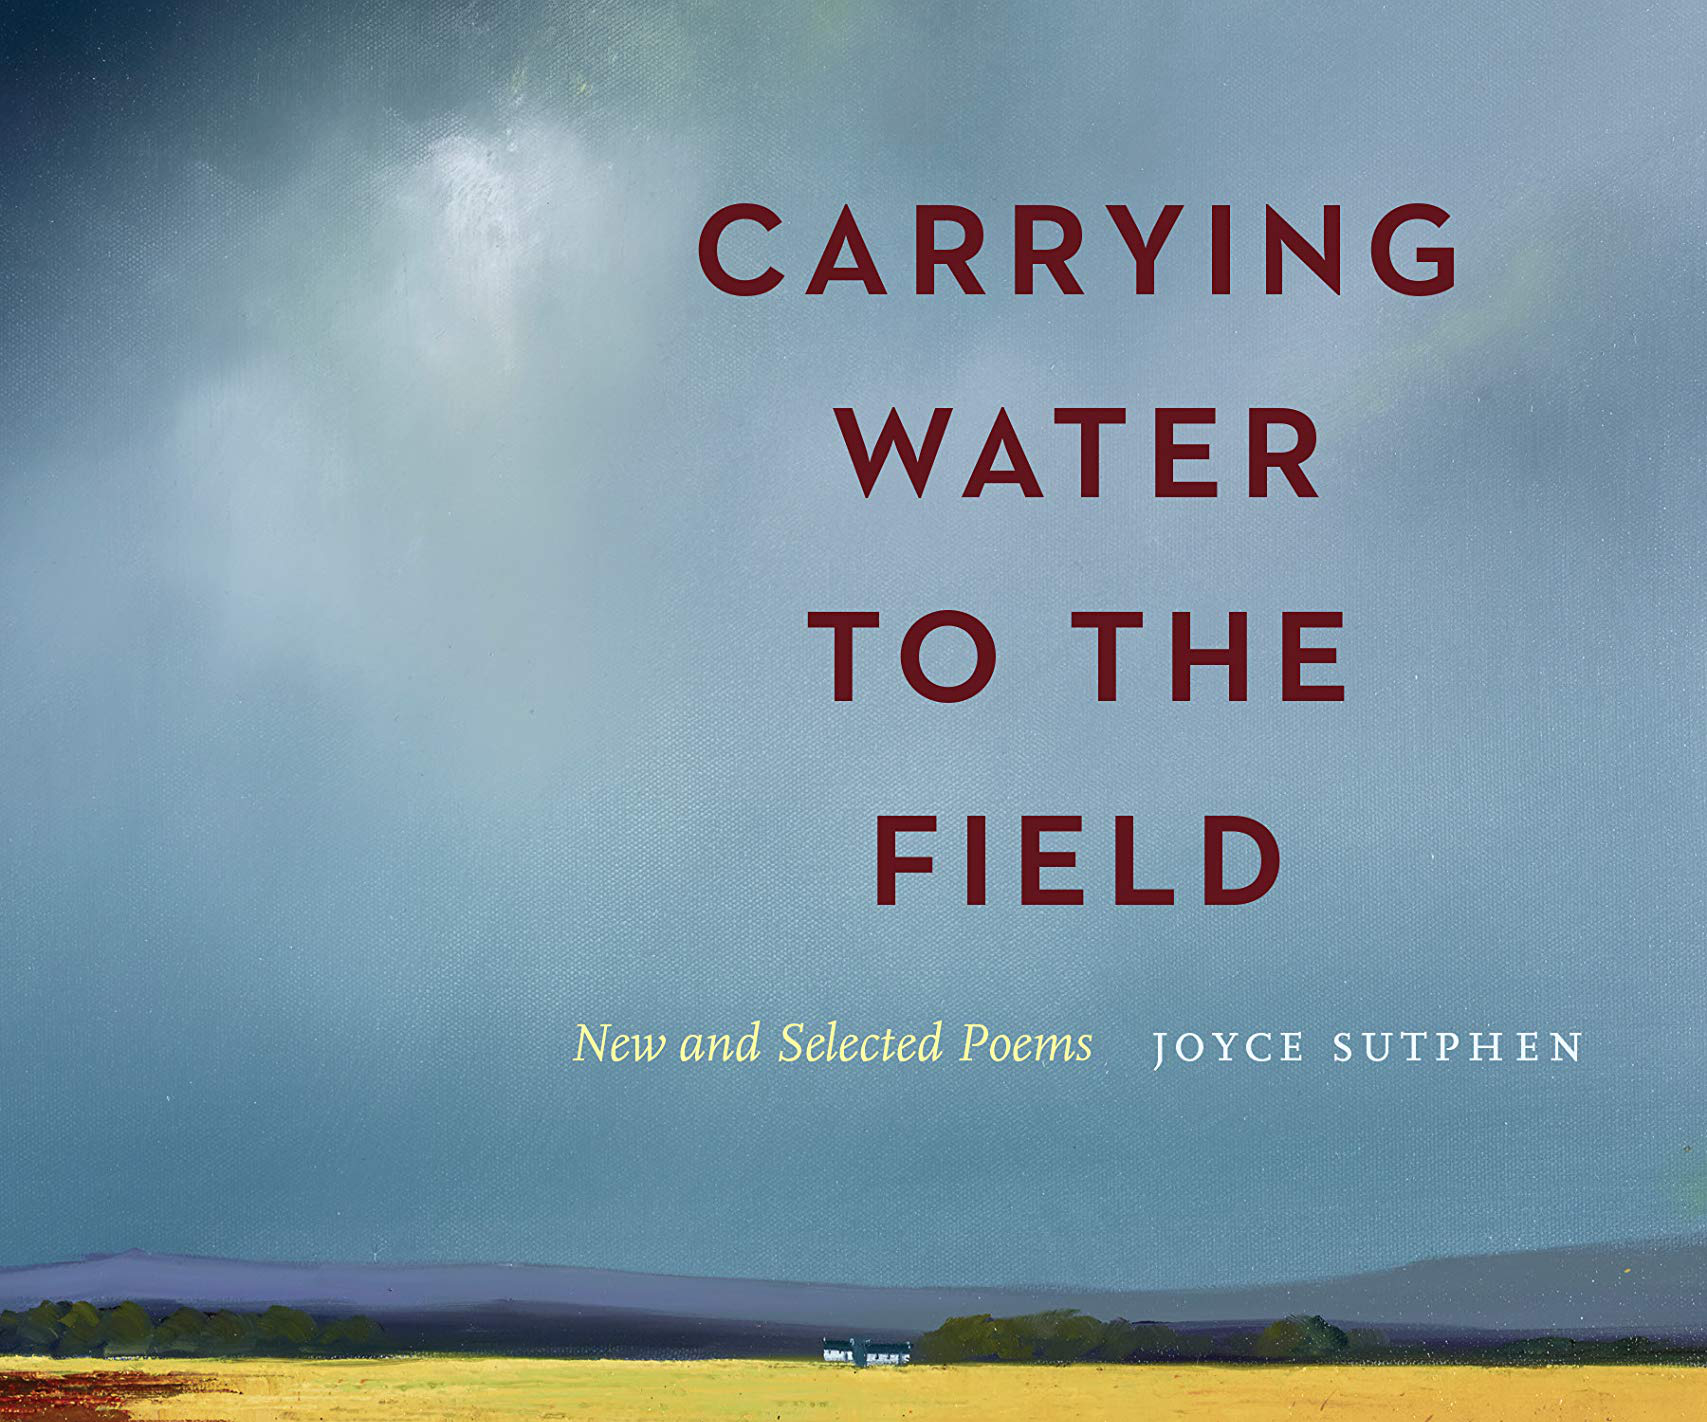 Carrying Water to the Field by Joyce Sutphen